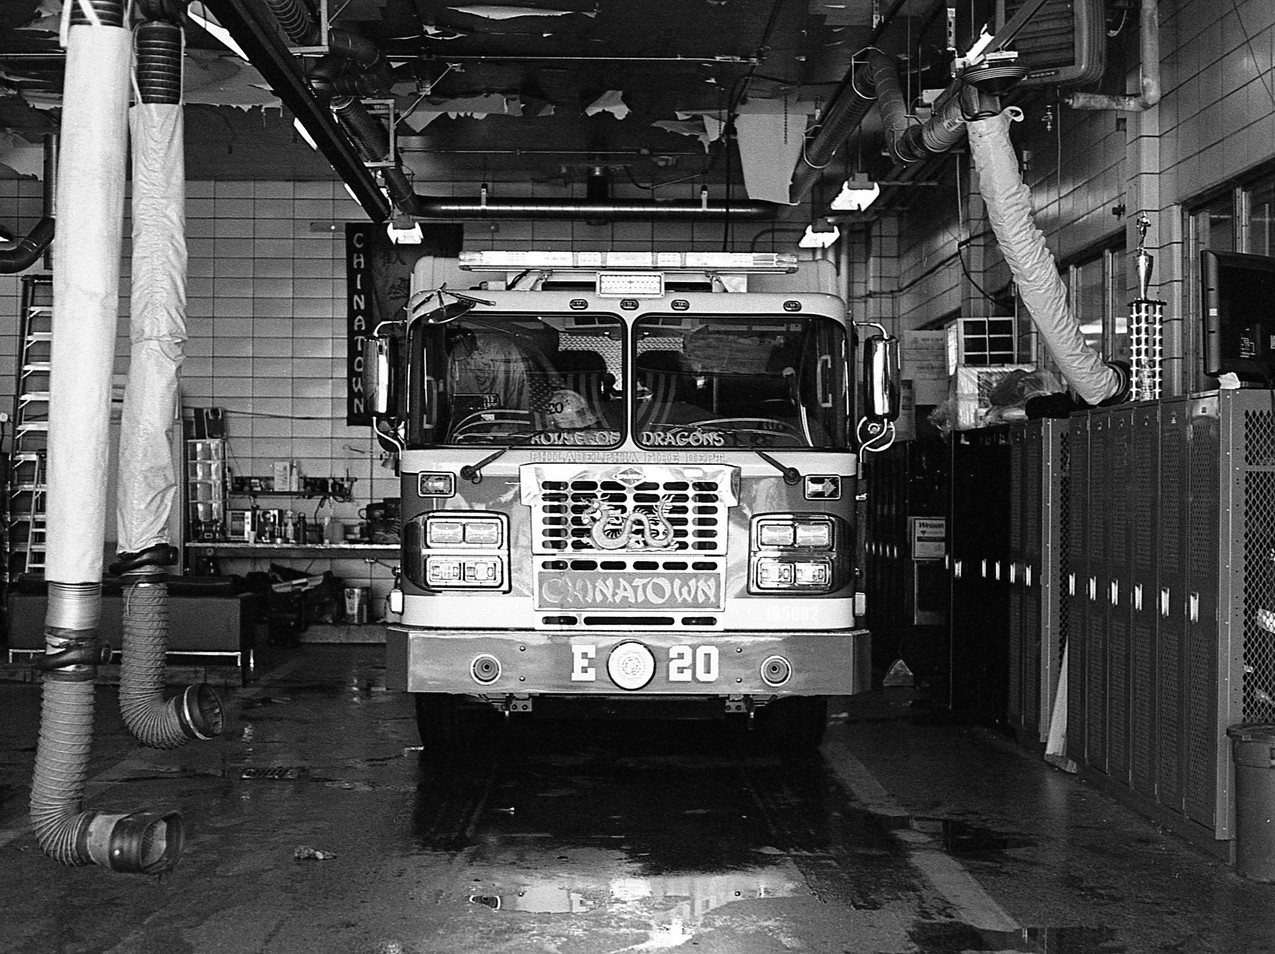 Chinatown Fire Department.